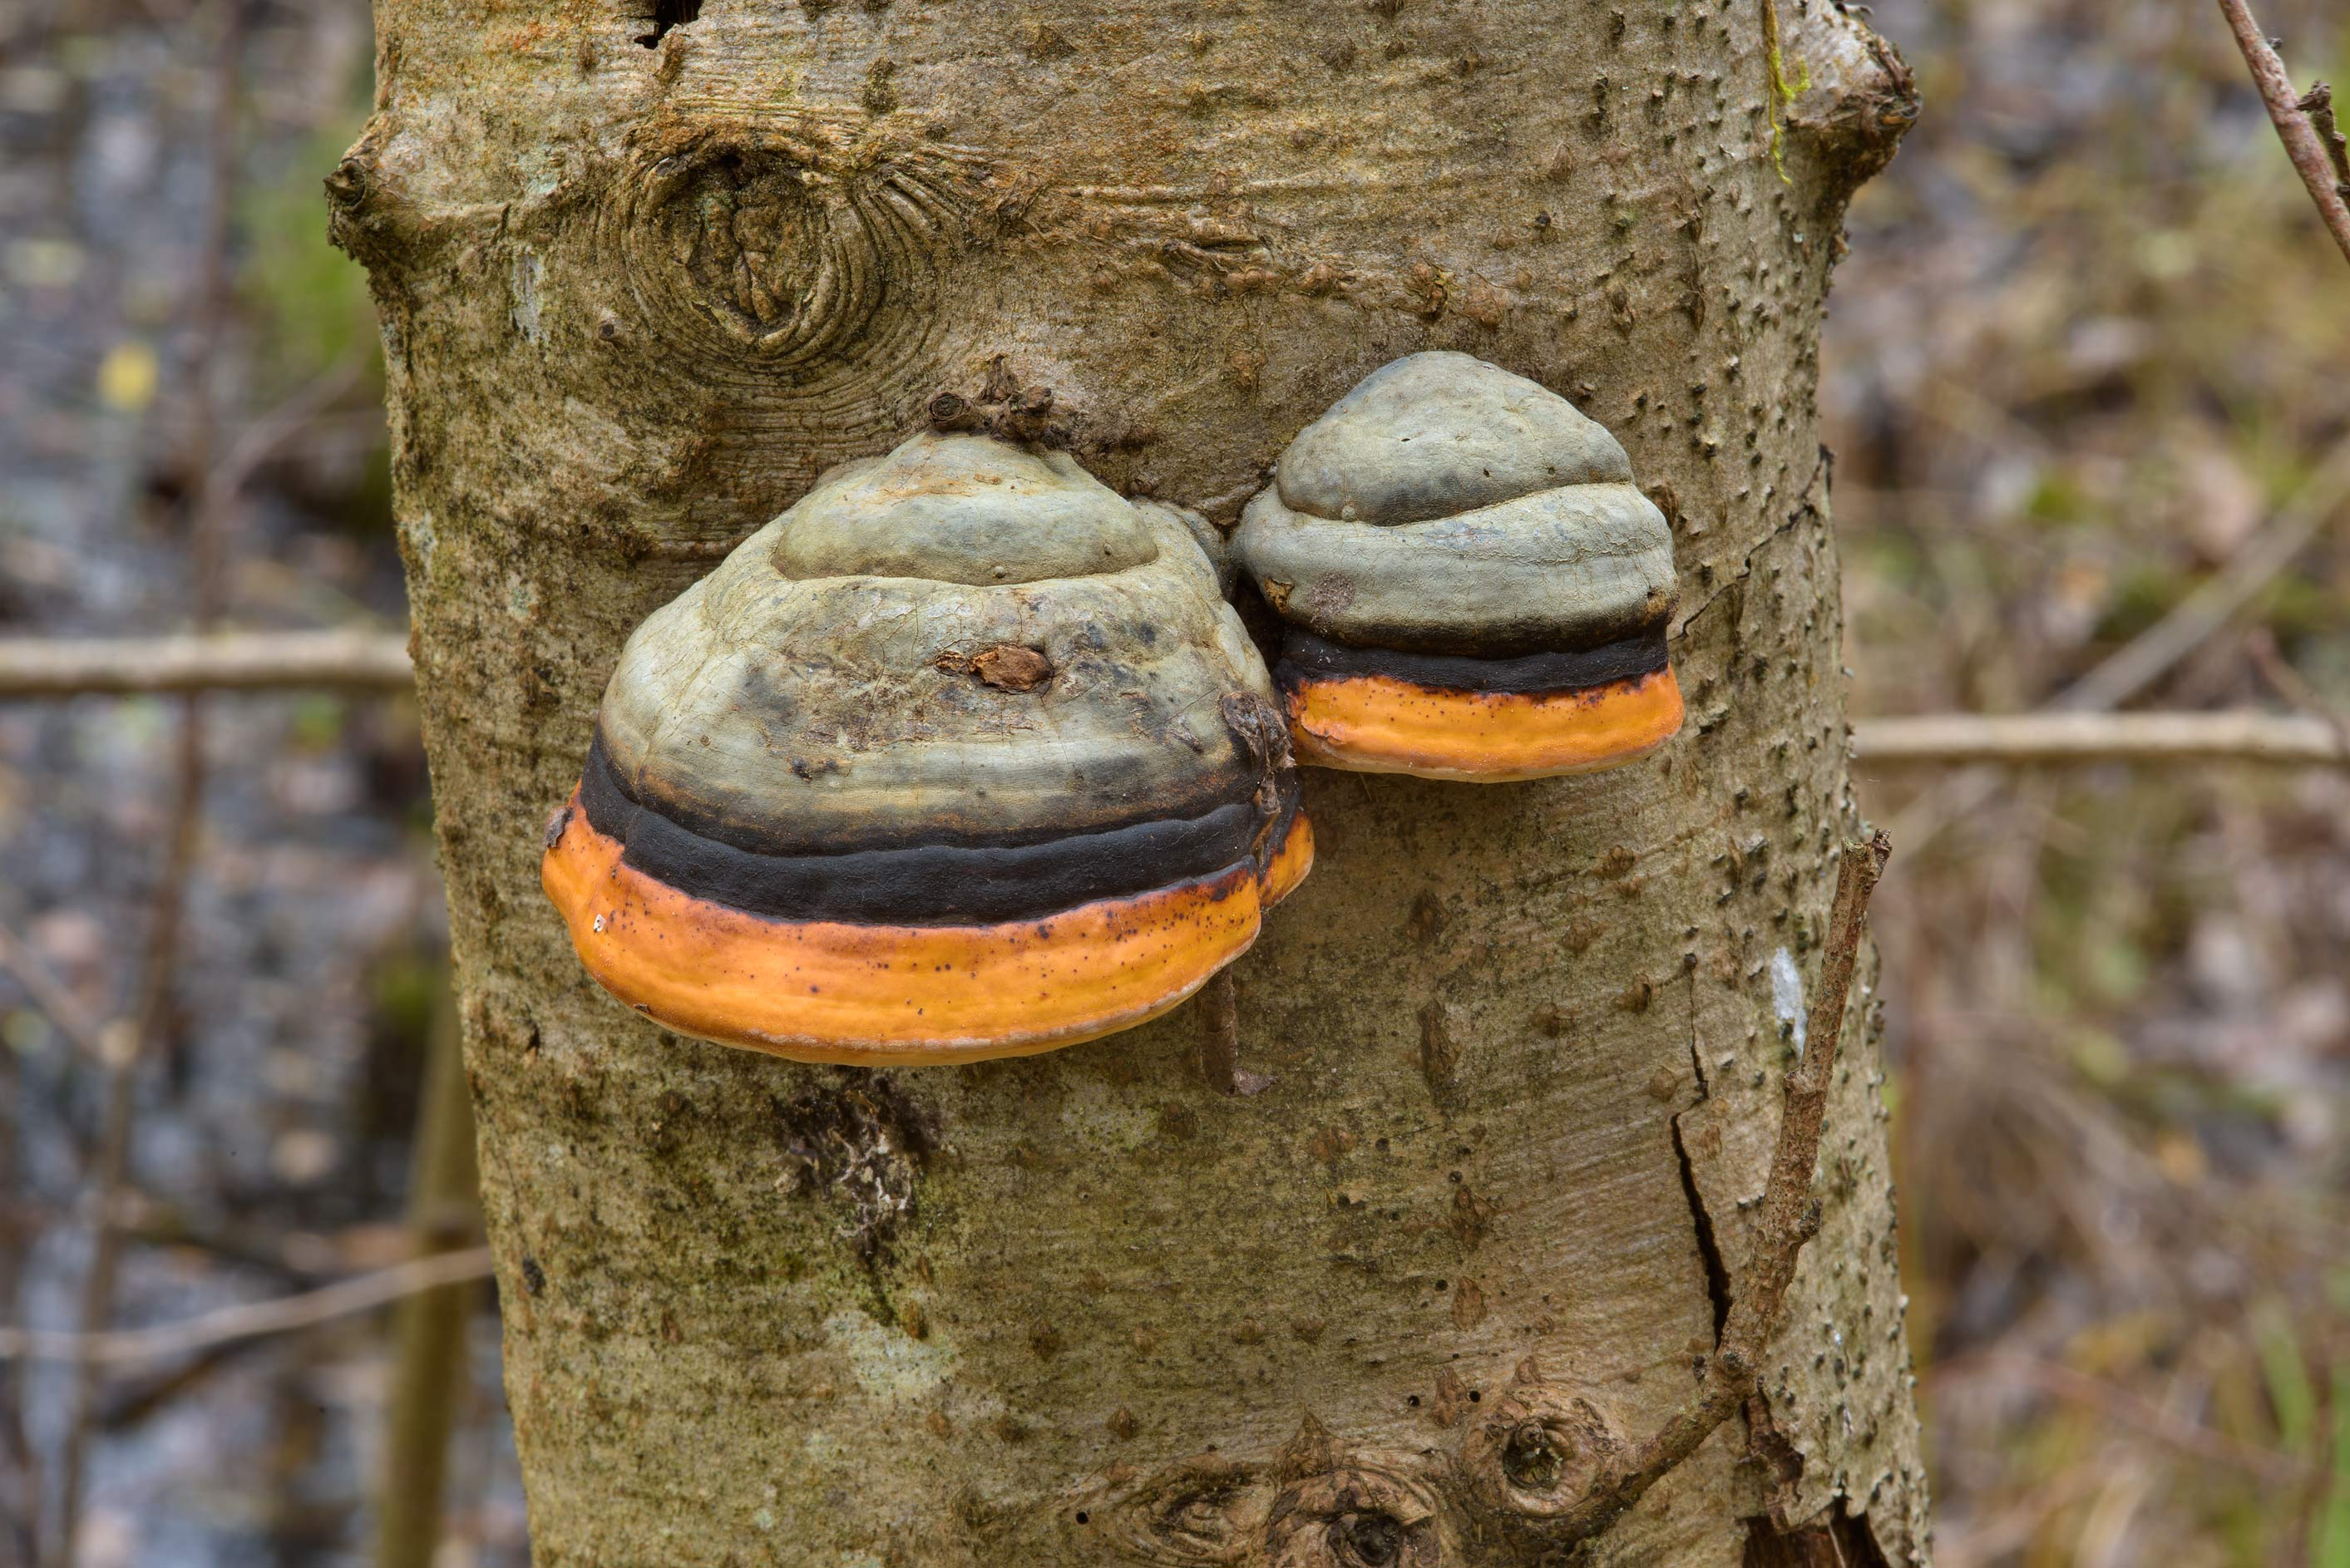 Red-Belt Conk (polypore mushroom Fomitopsis...north-west from St.Petersburg, Russia